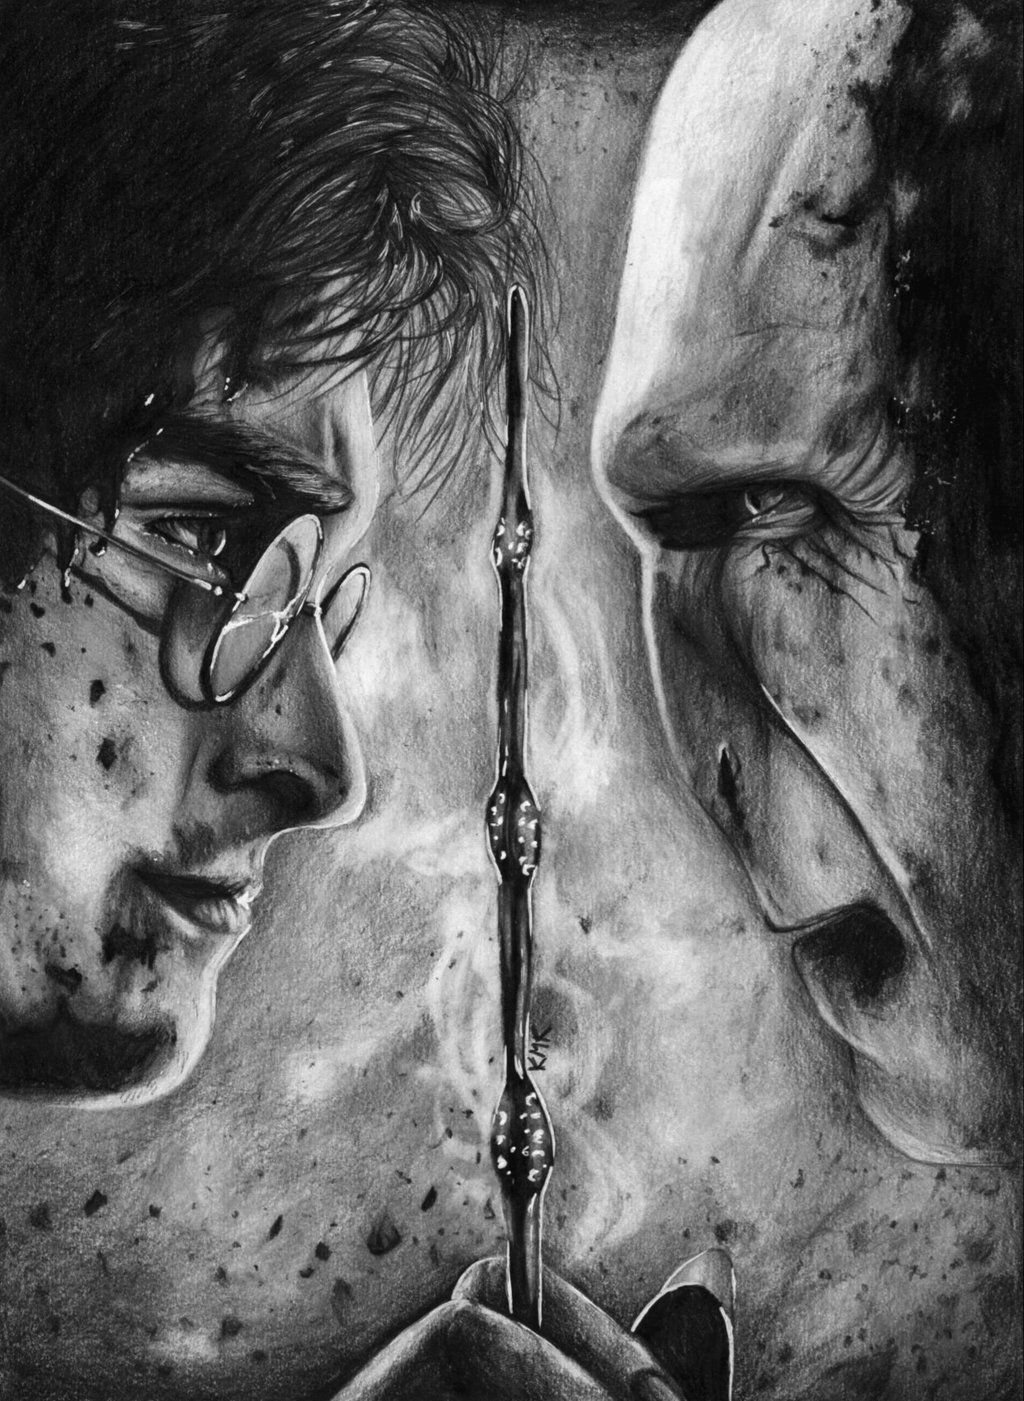 Black And White Pencil Drawing Of Harry Potter And Lord